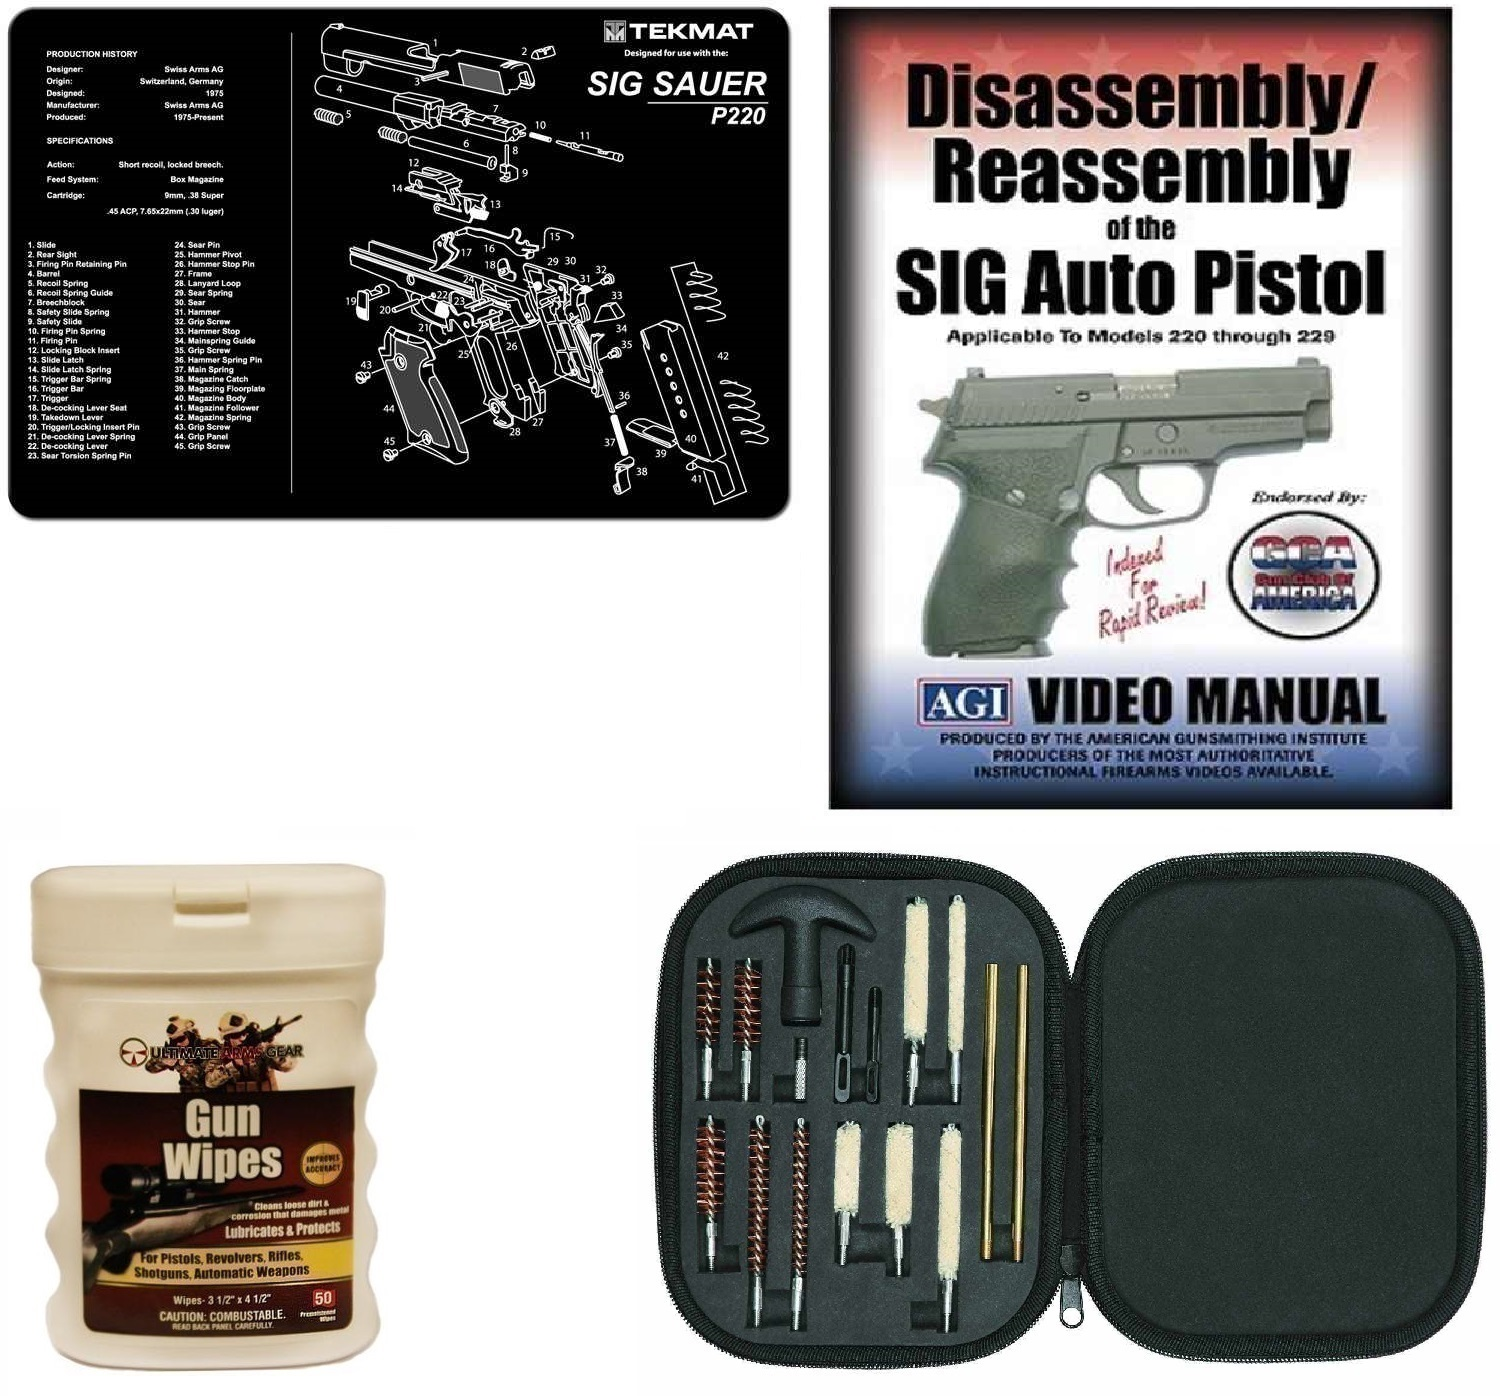 AGI DVD SIG Sauer P220 Disassembly and Reassembly + Ultimate Arms Gear Gunsmith & Armorer's Cleaning Bench Gun Mat +... by